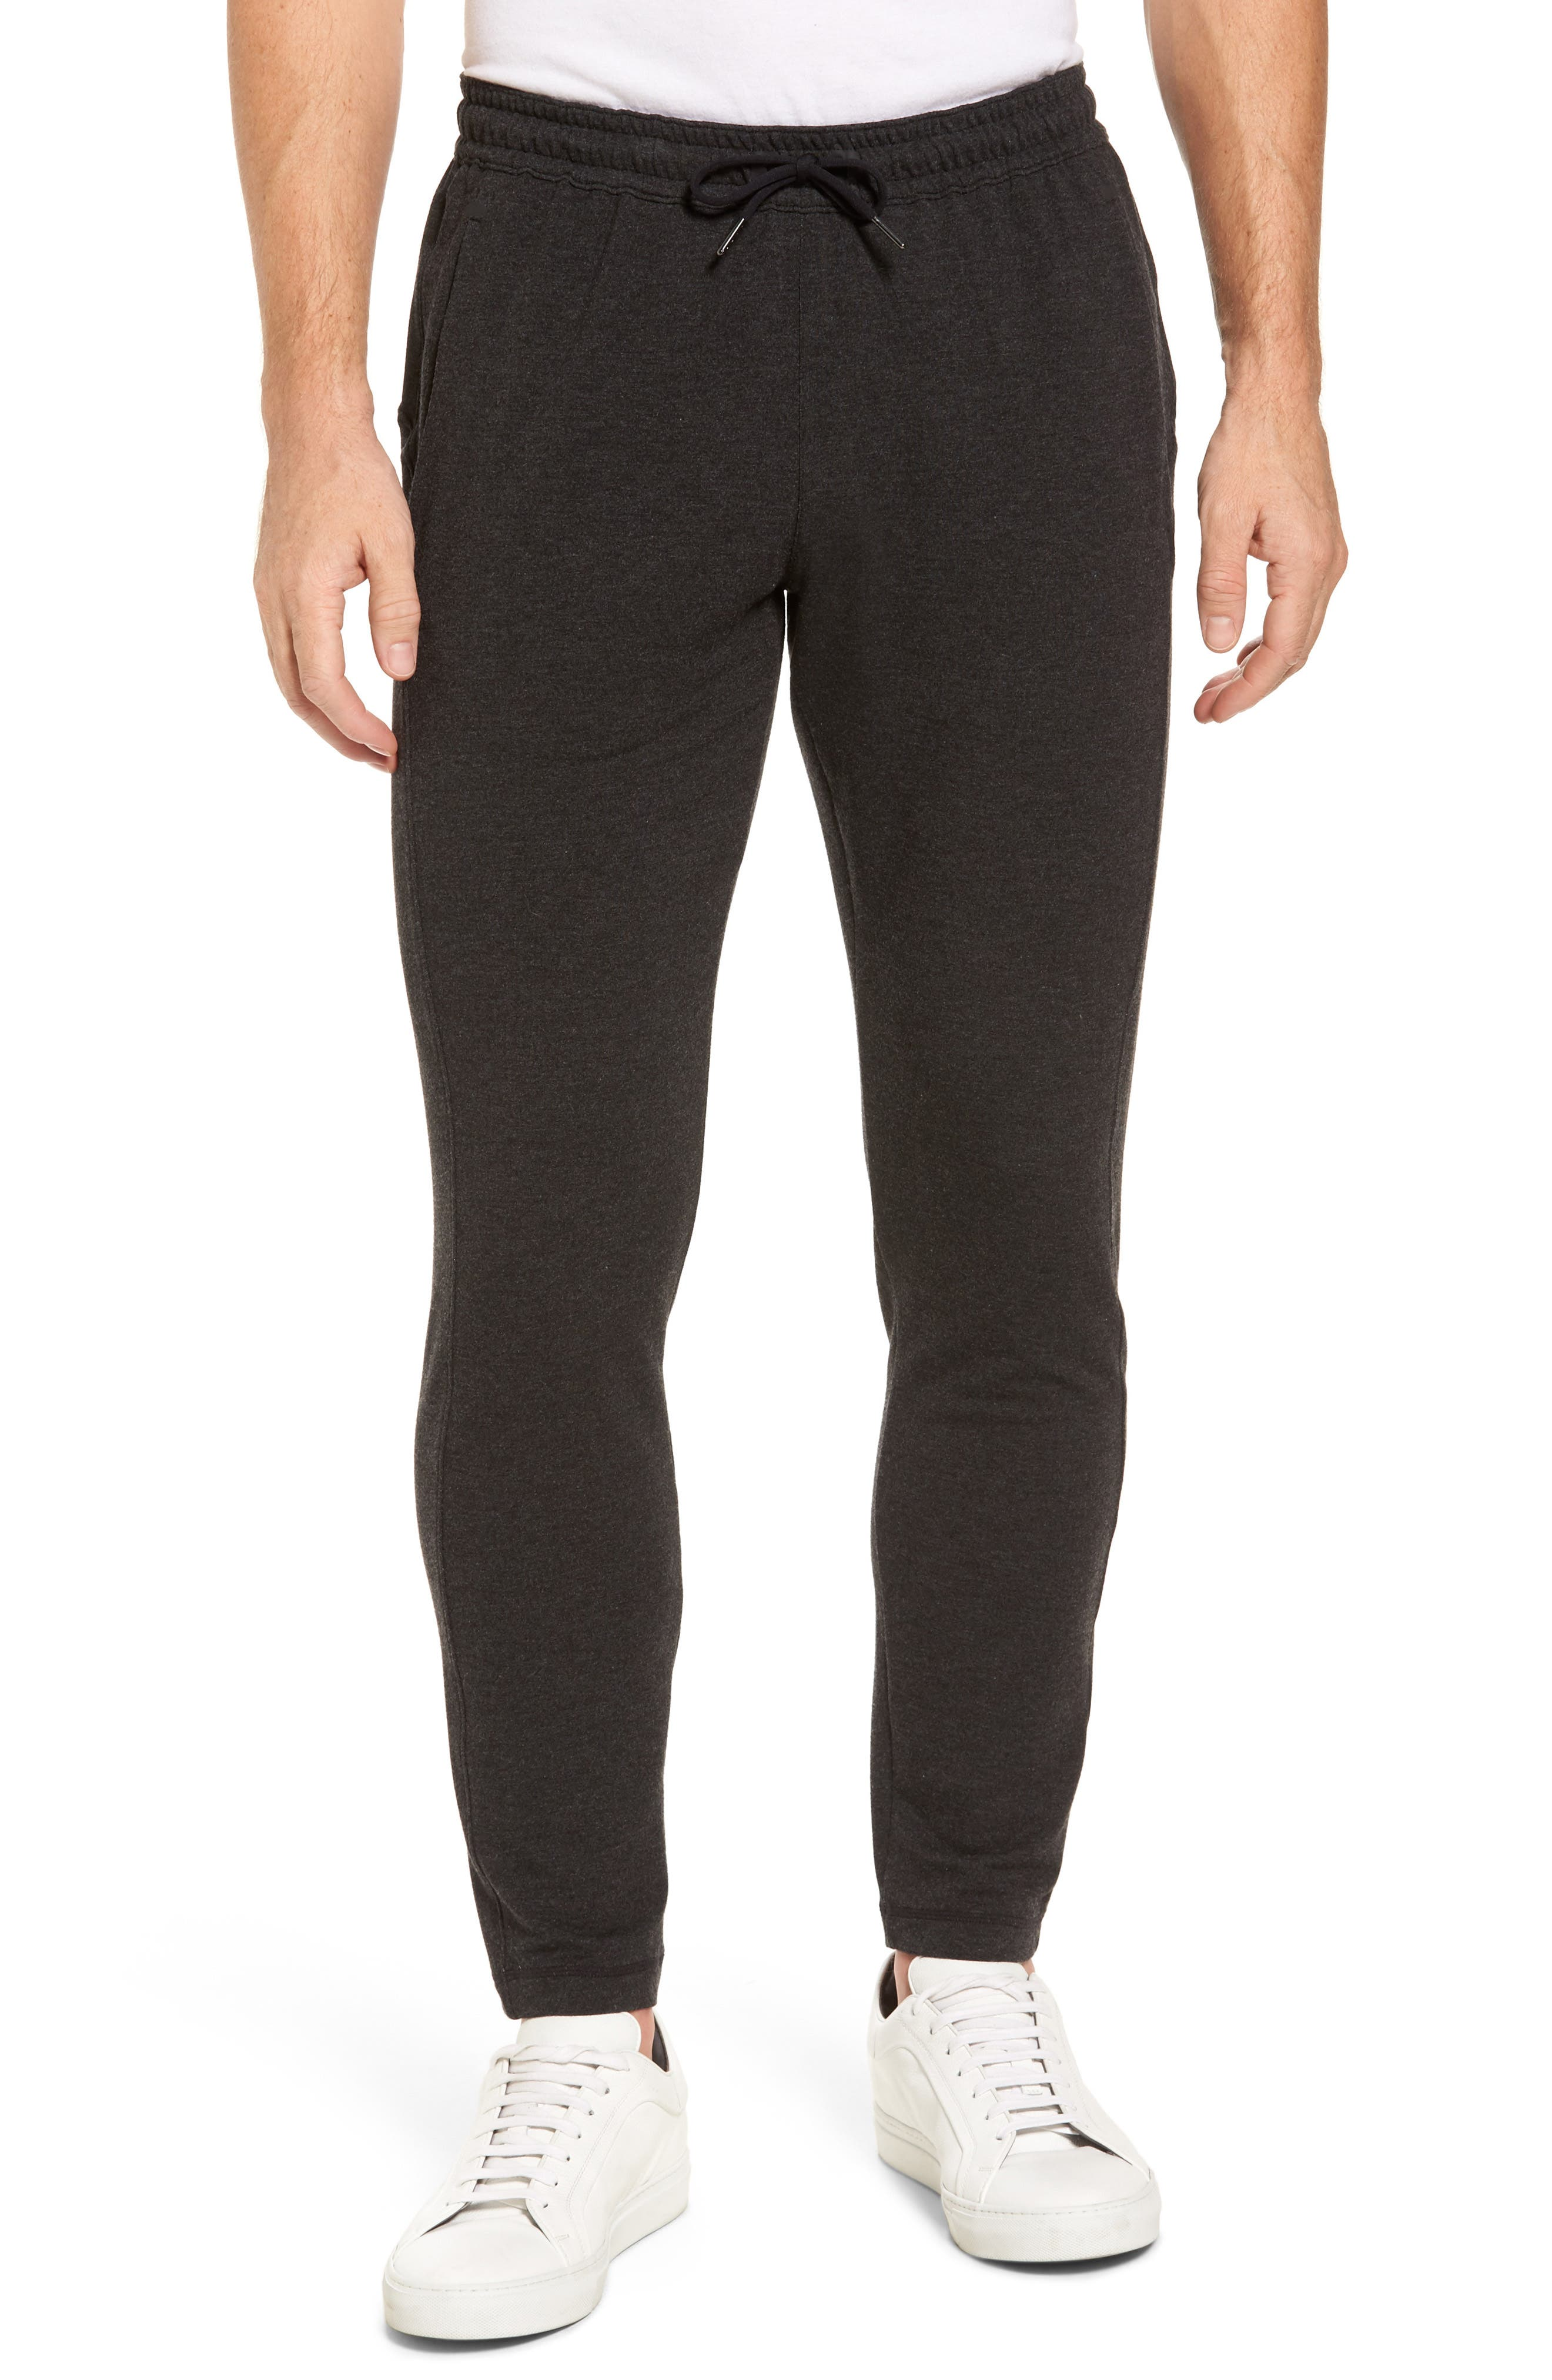 New Pyrite Tapered Fit Fleece Pants,                         Main,                         color, Black Oxide Heather